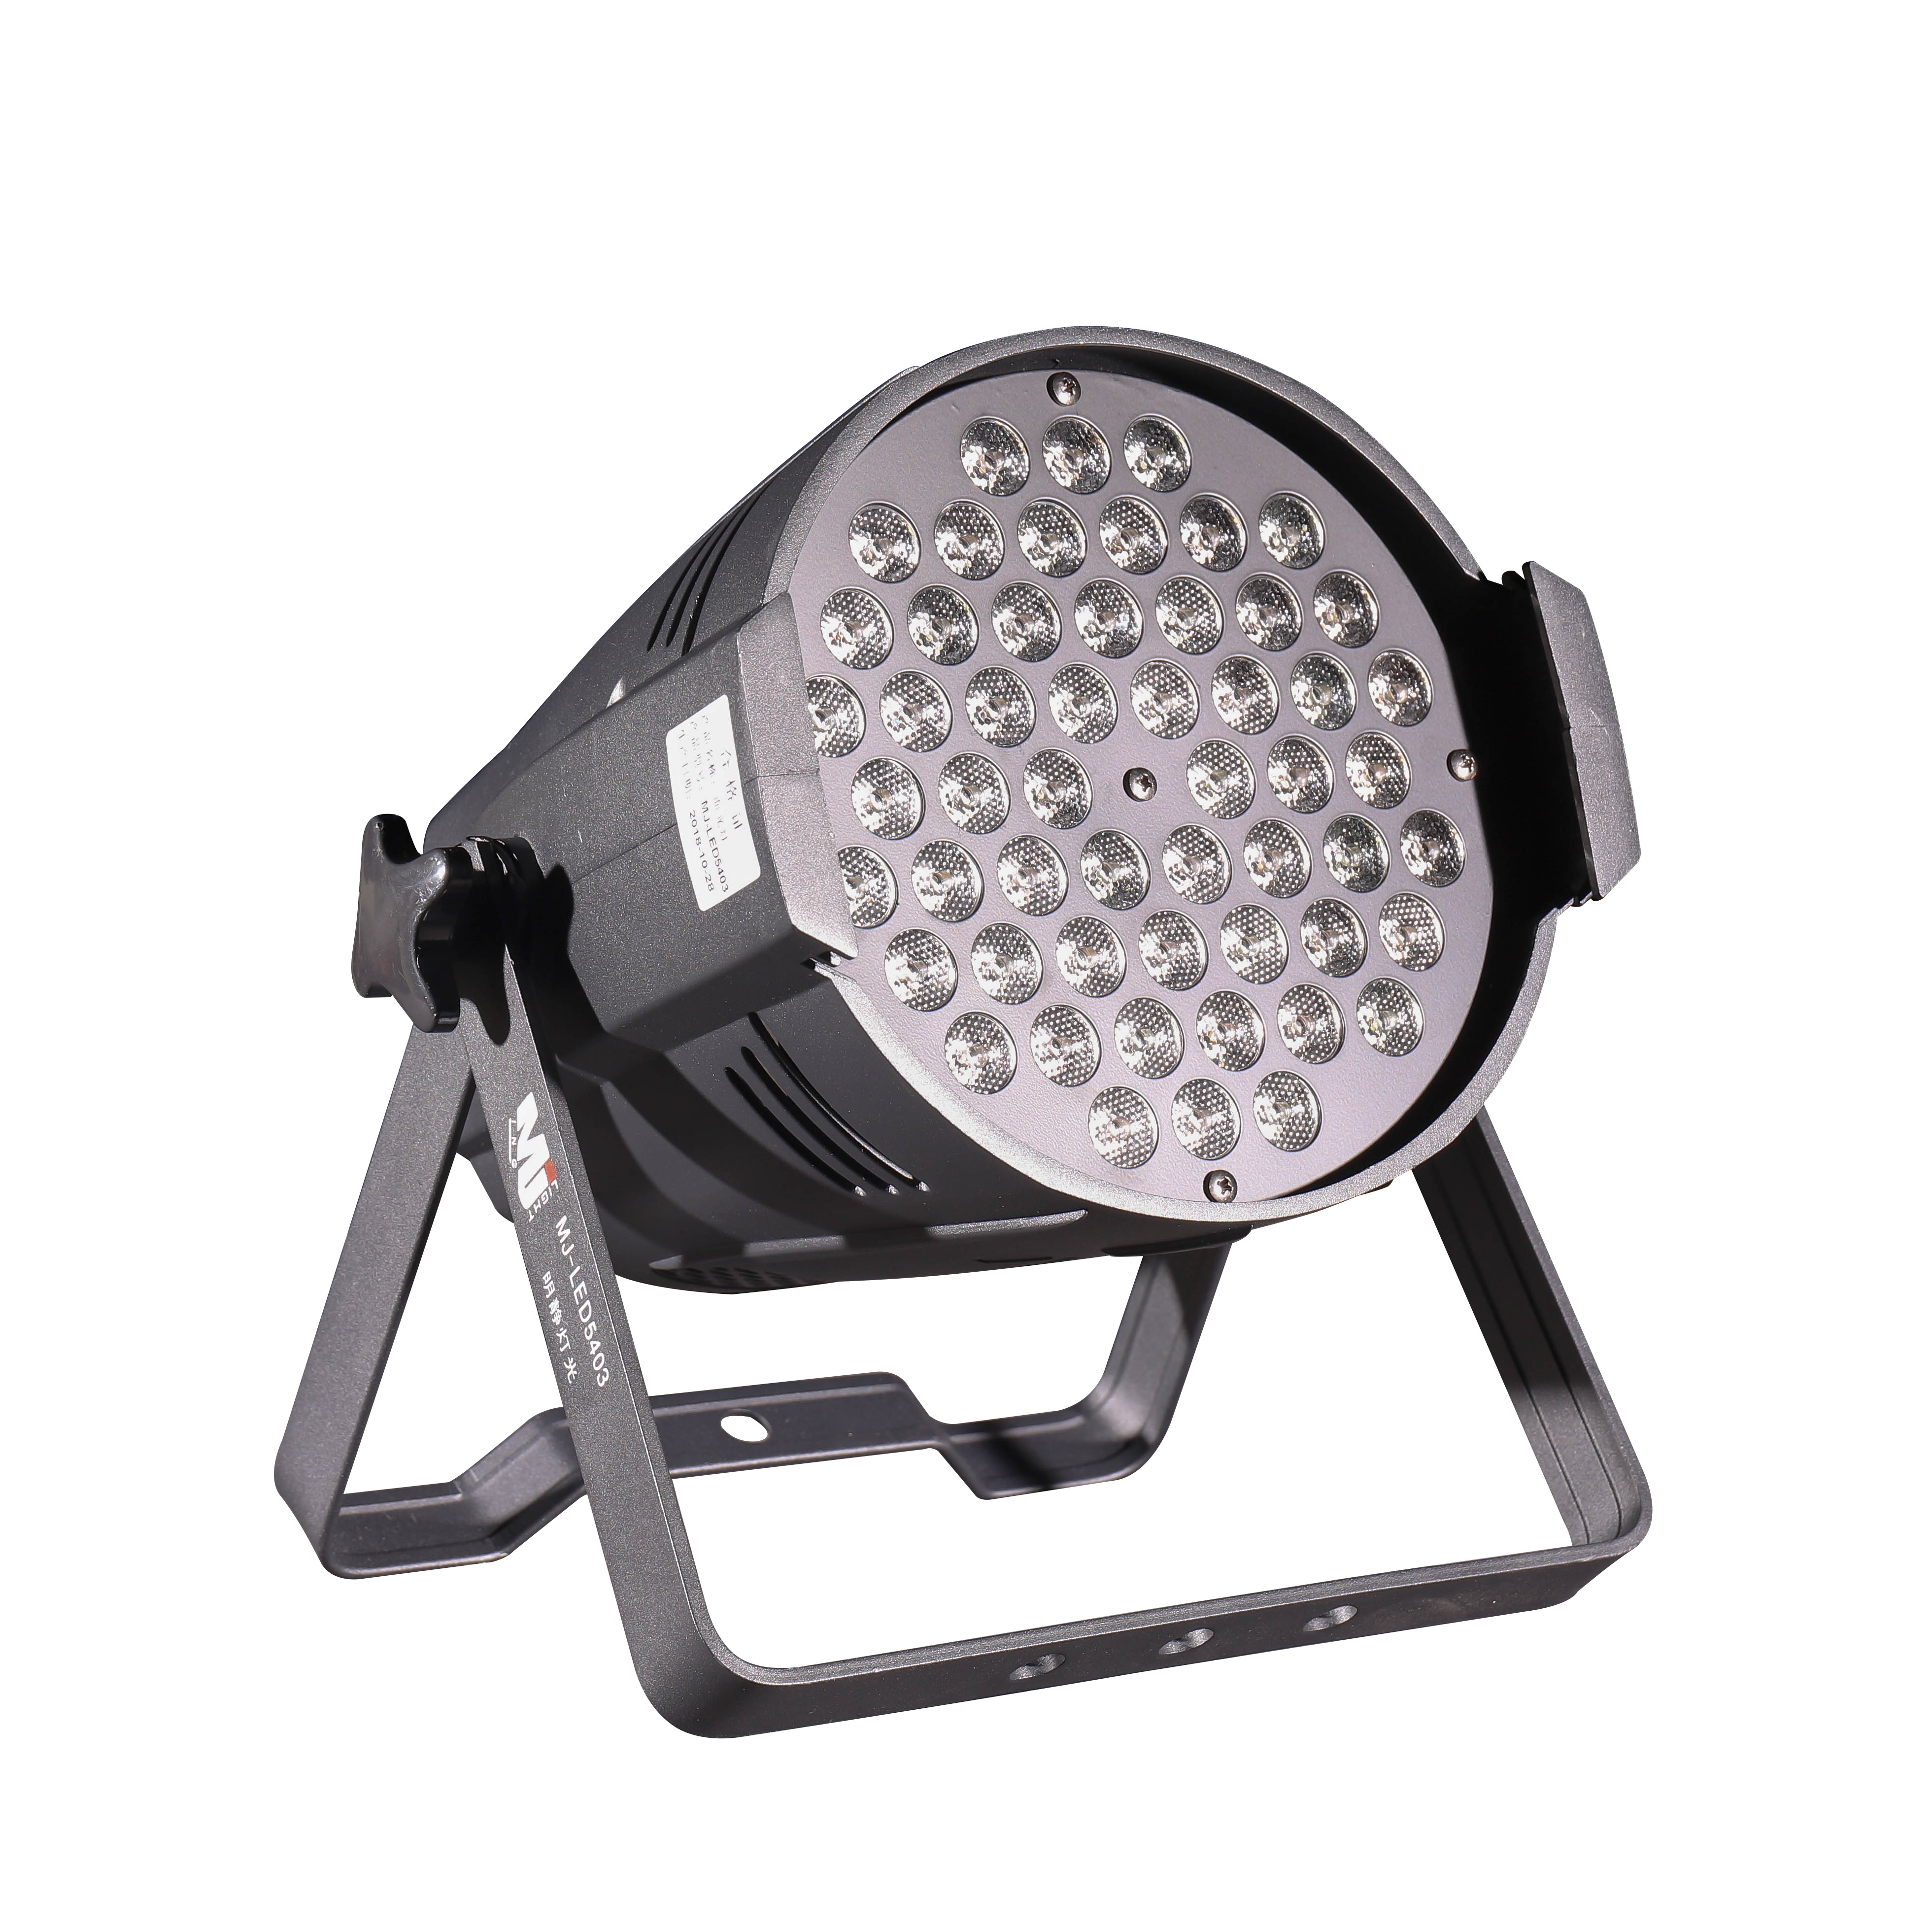 Ming Jing 54pcs 3w Led Par Light with 2 Years Warranty